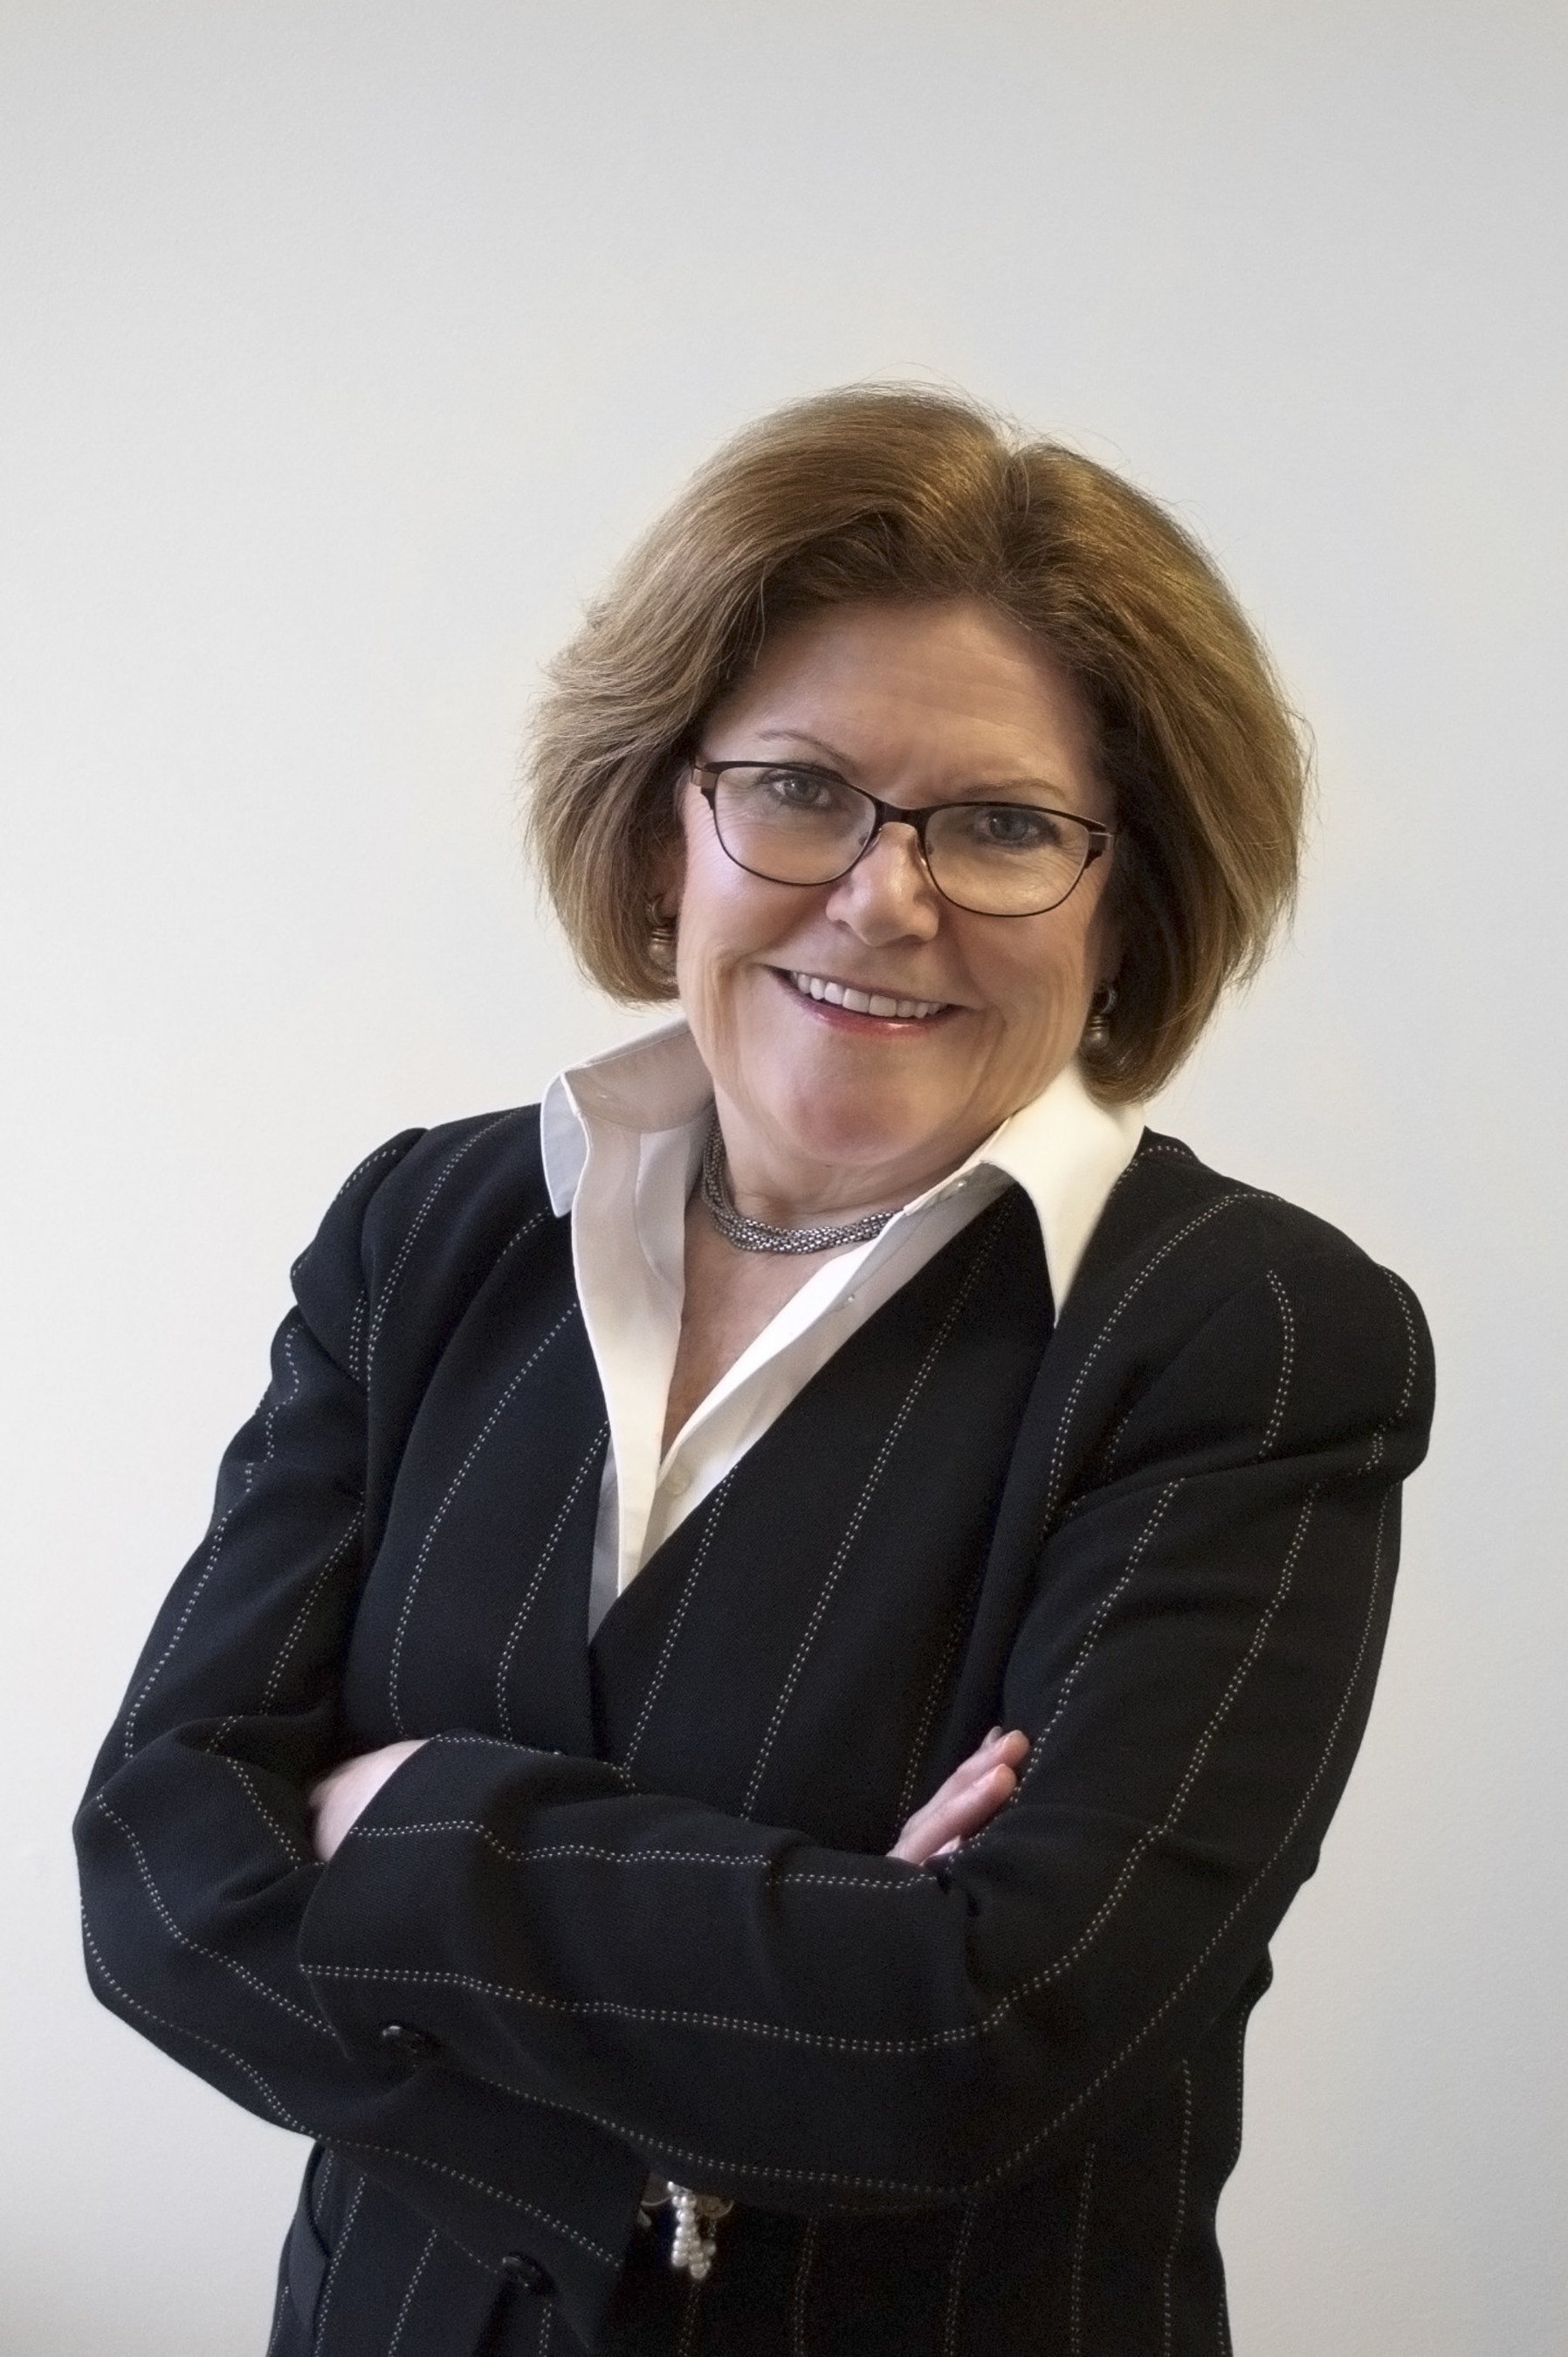 Celia Clancy, President and Chief Executive Officer, Country Curtains